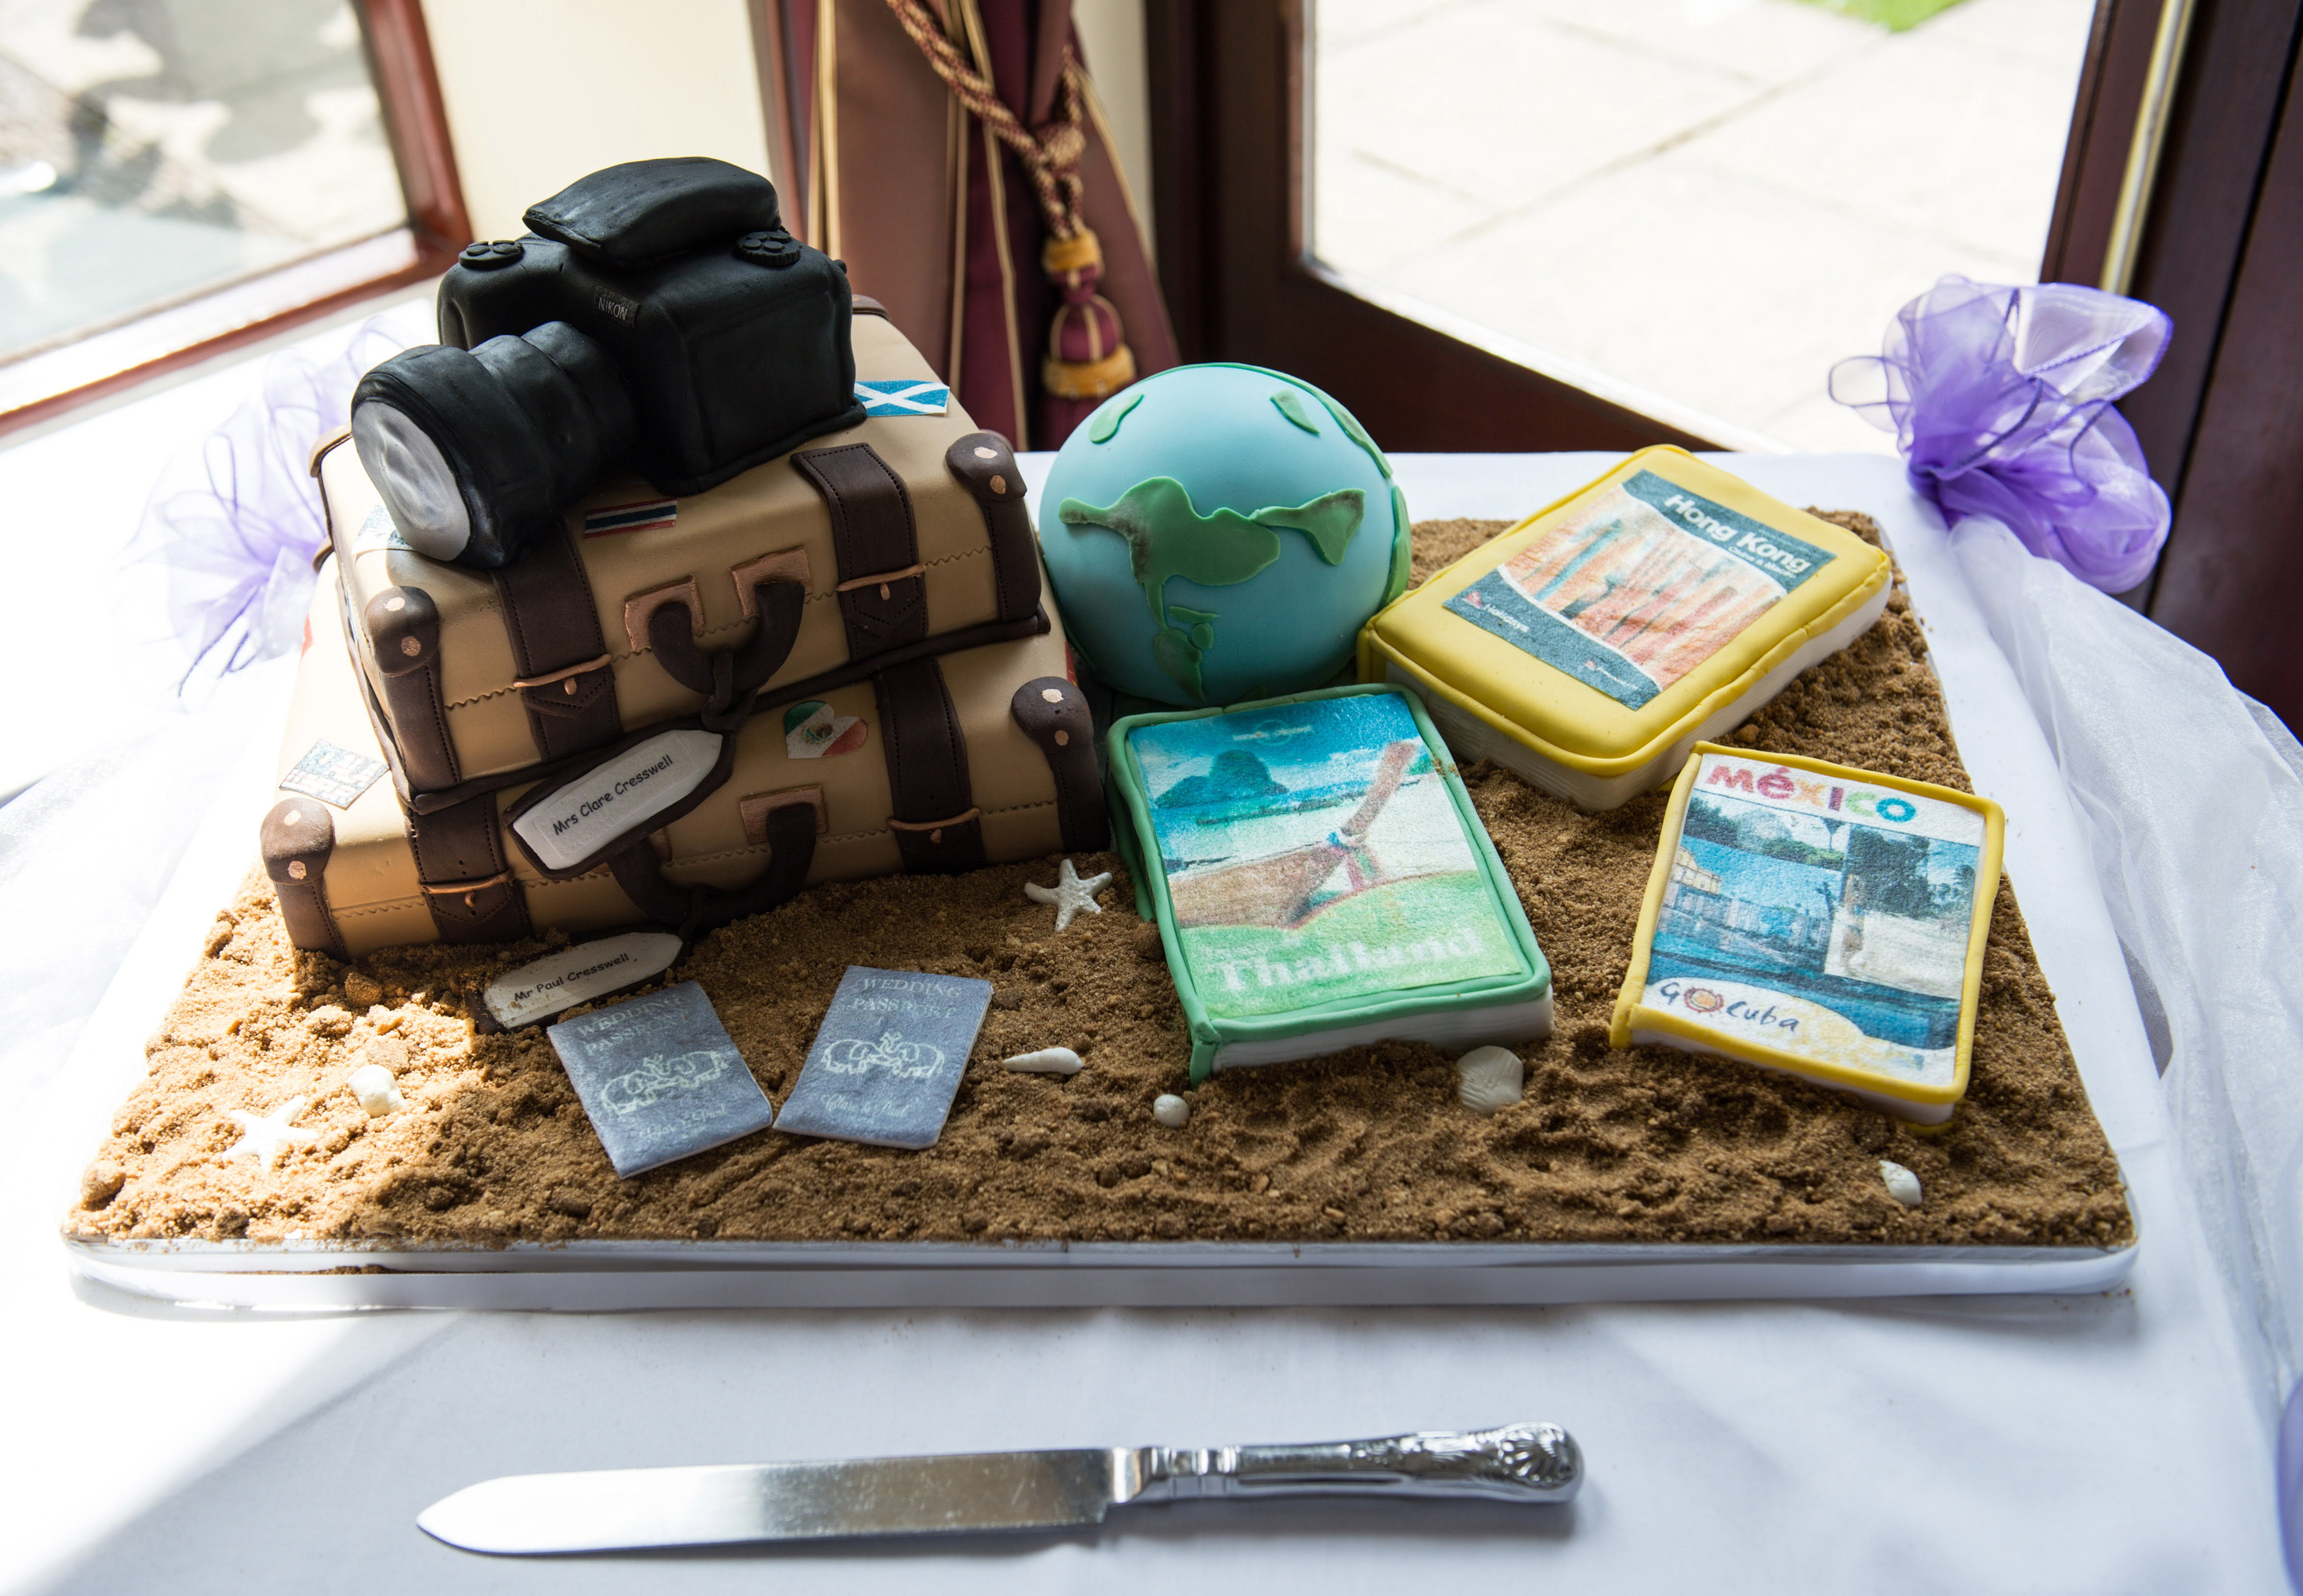 Travel theme wedding cake. Camera and Suitcase.